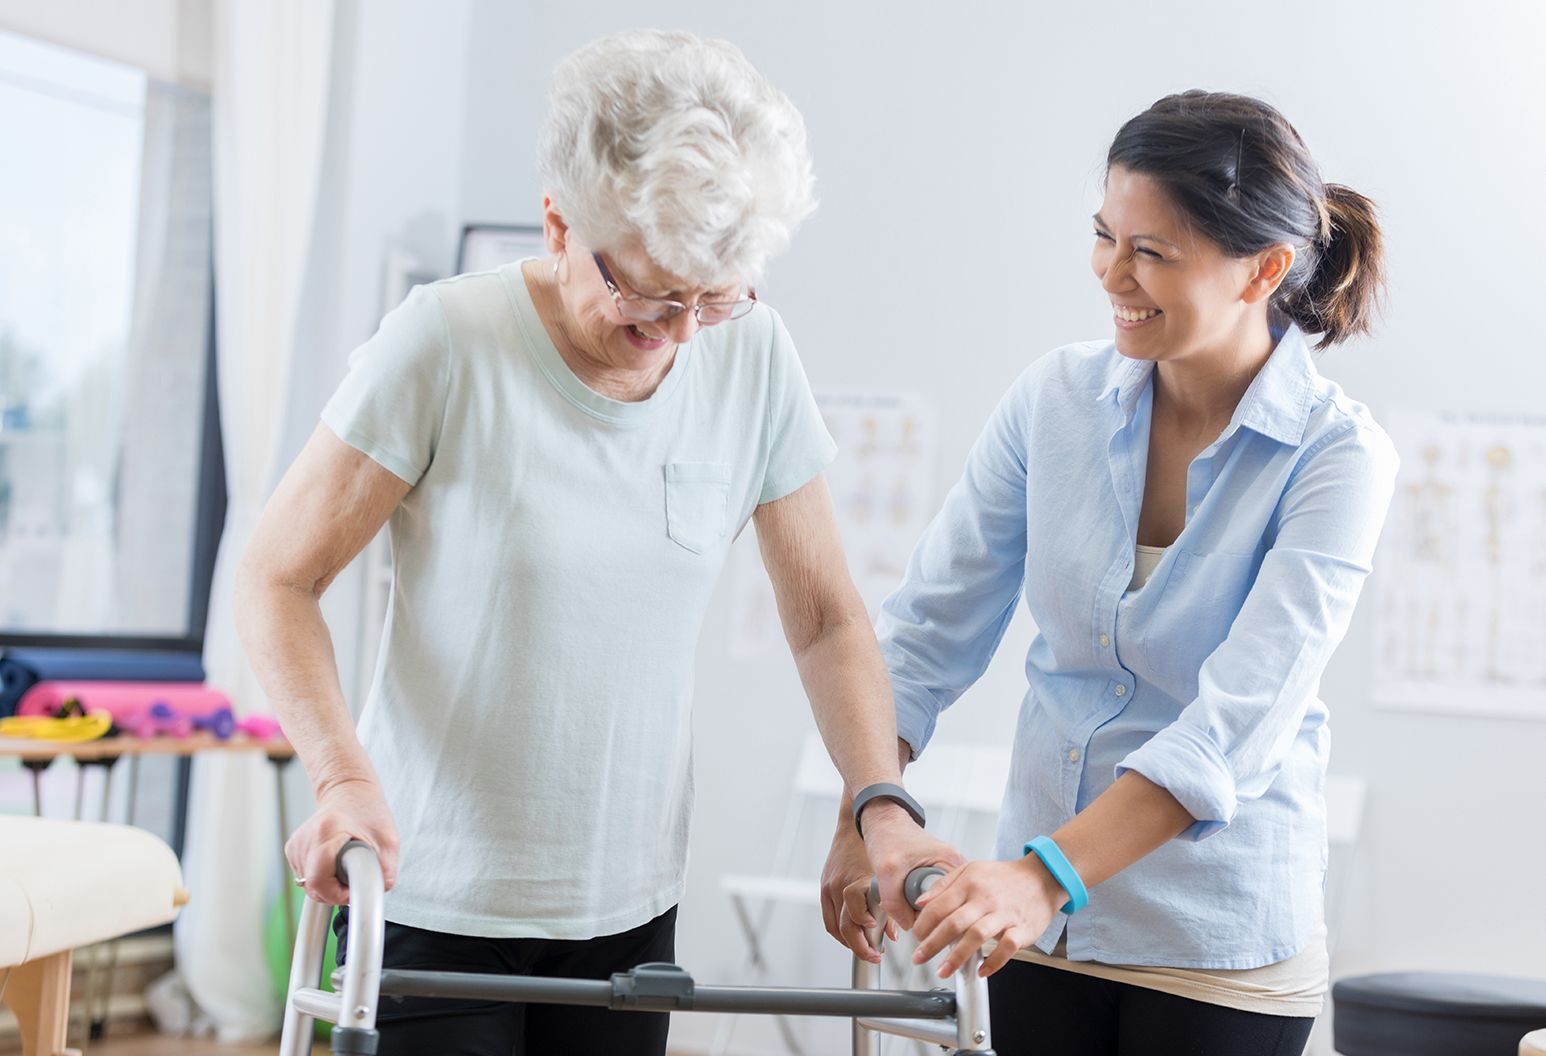 Cheerful senior Caucasian woman uses a walker during physical therapy session. A mid adult Asian female physical therapist is helping her walk with the walker.